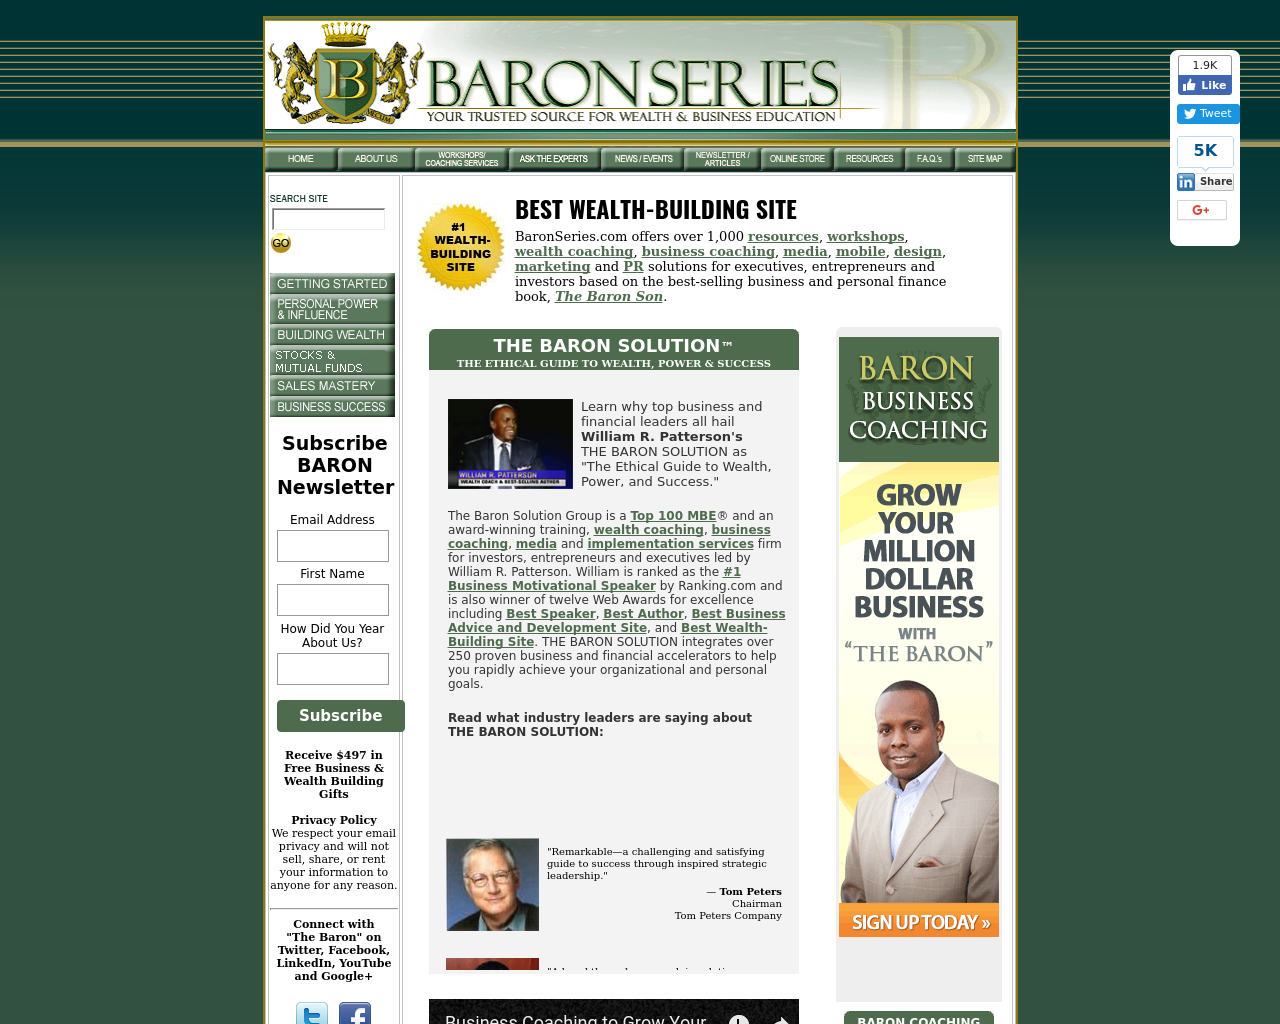 Baron-Series-Advertising-Reviews-Pricing